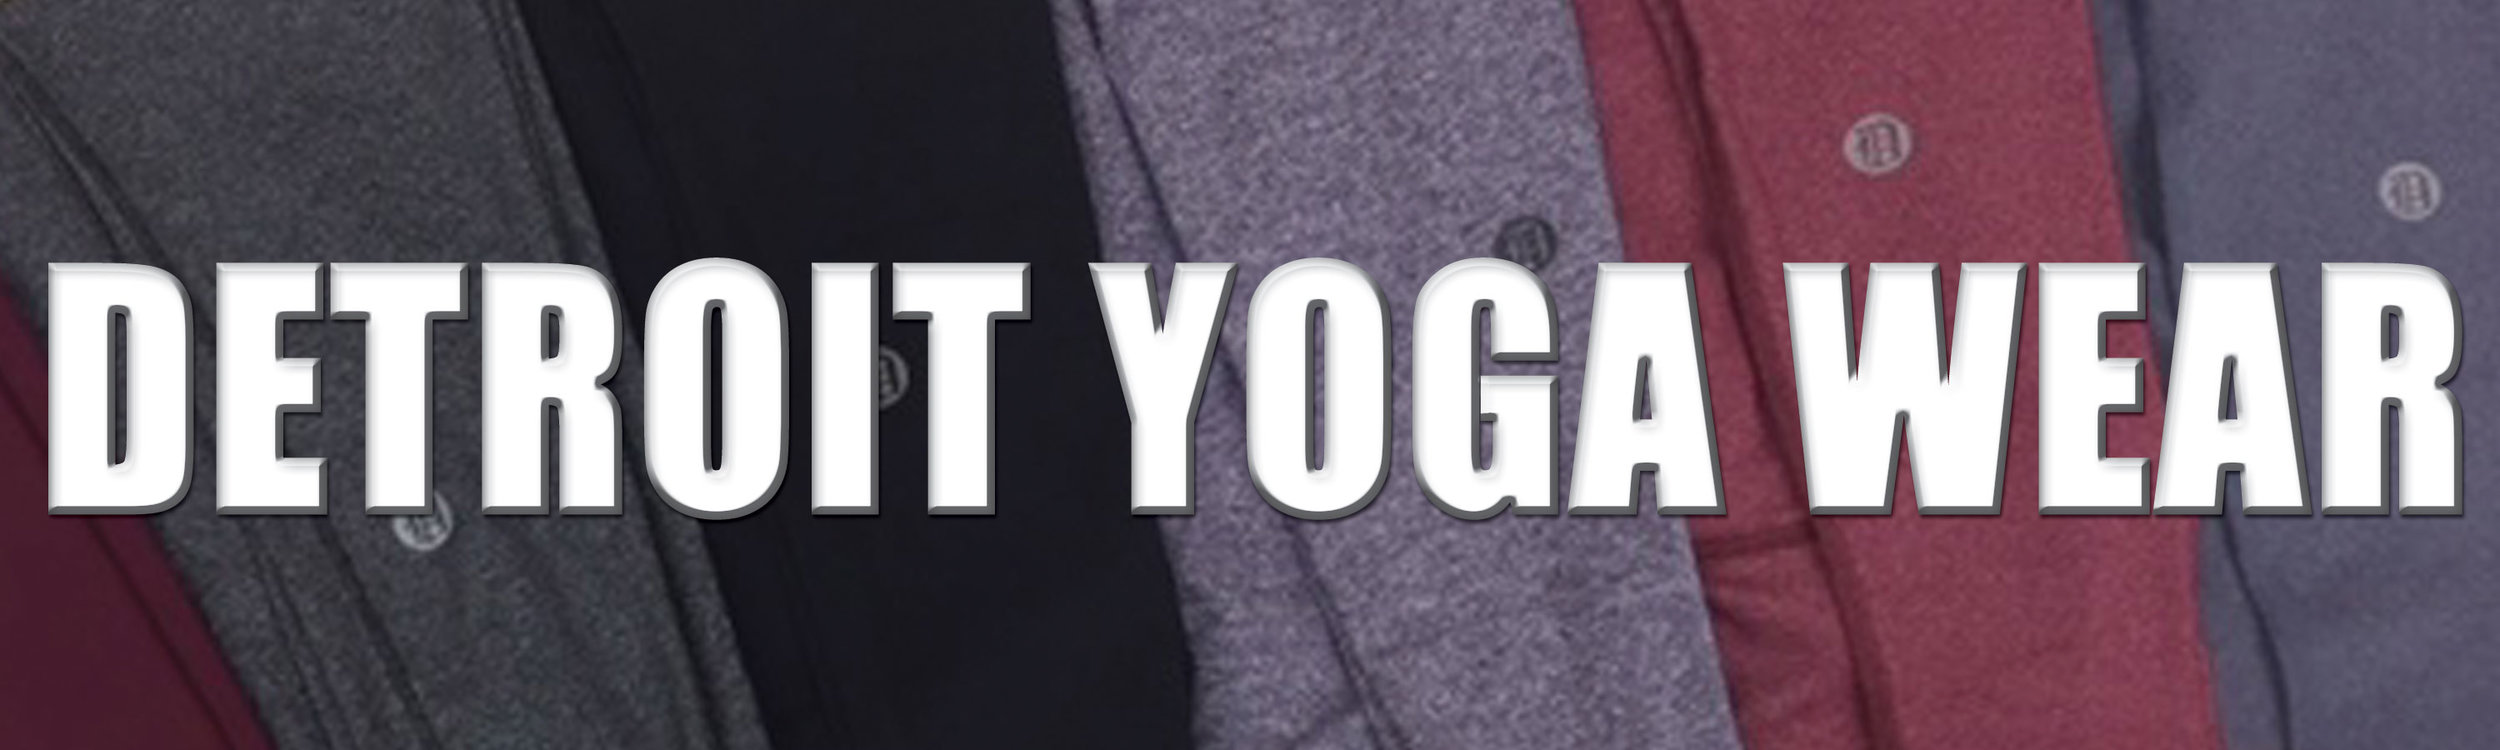 DETROIT-YOGA-WEAR-BANNER.jpg